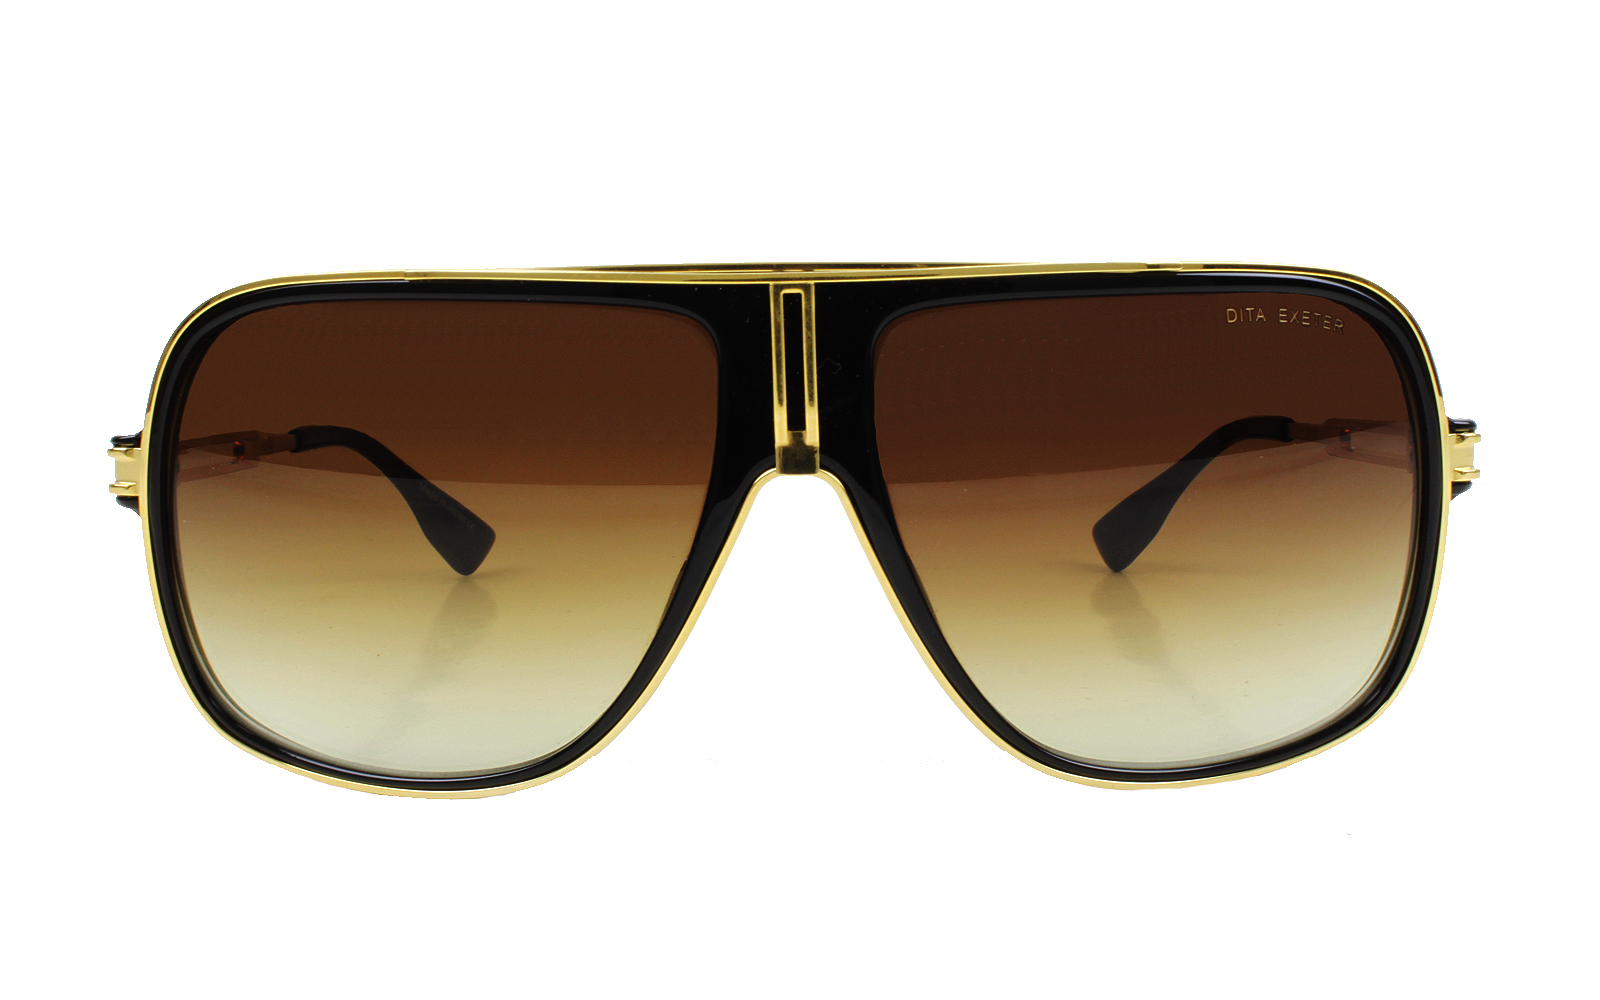 5daaba6974d3 Gifts For Him  Dita Eyewear Exeter DRX-2029D sunglasses  giftsforhim  gifts   sunglasscurator